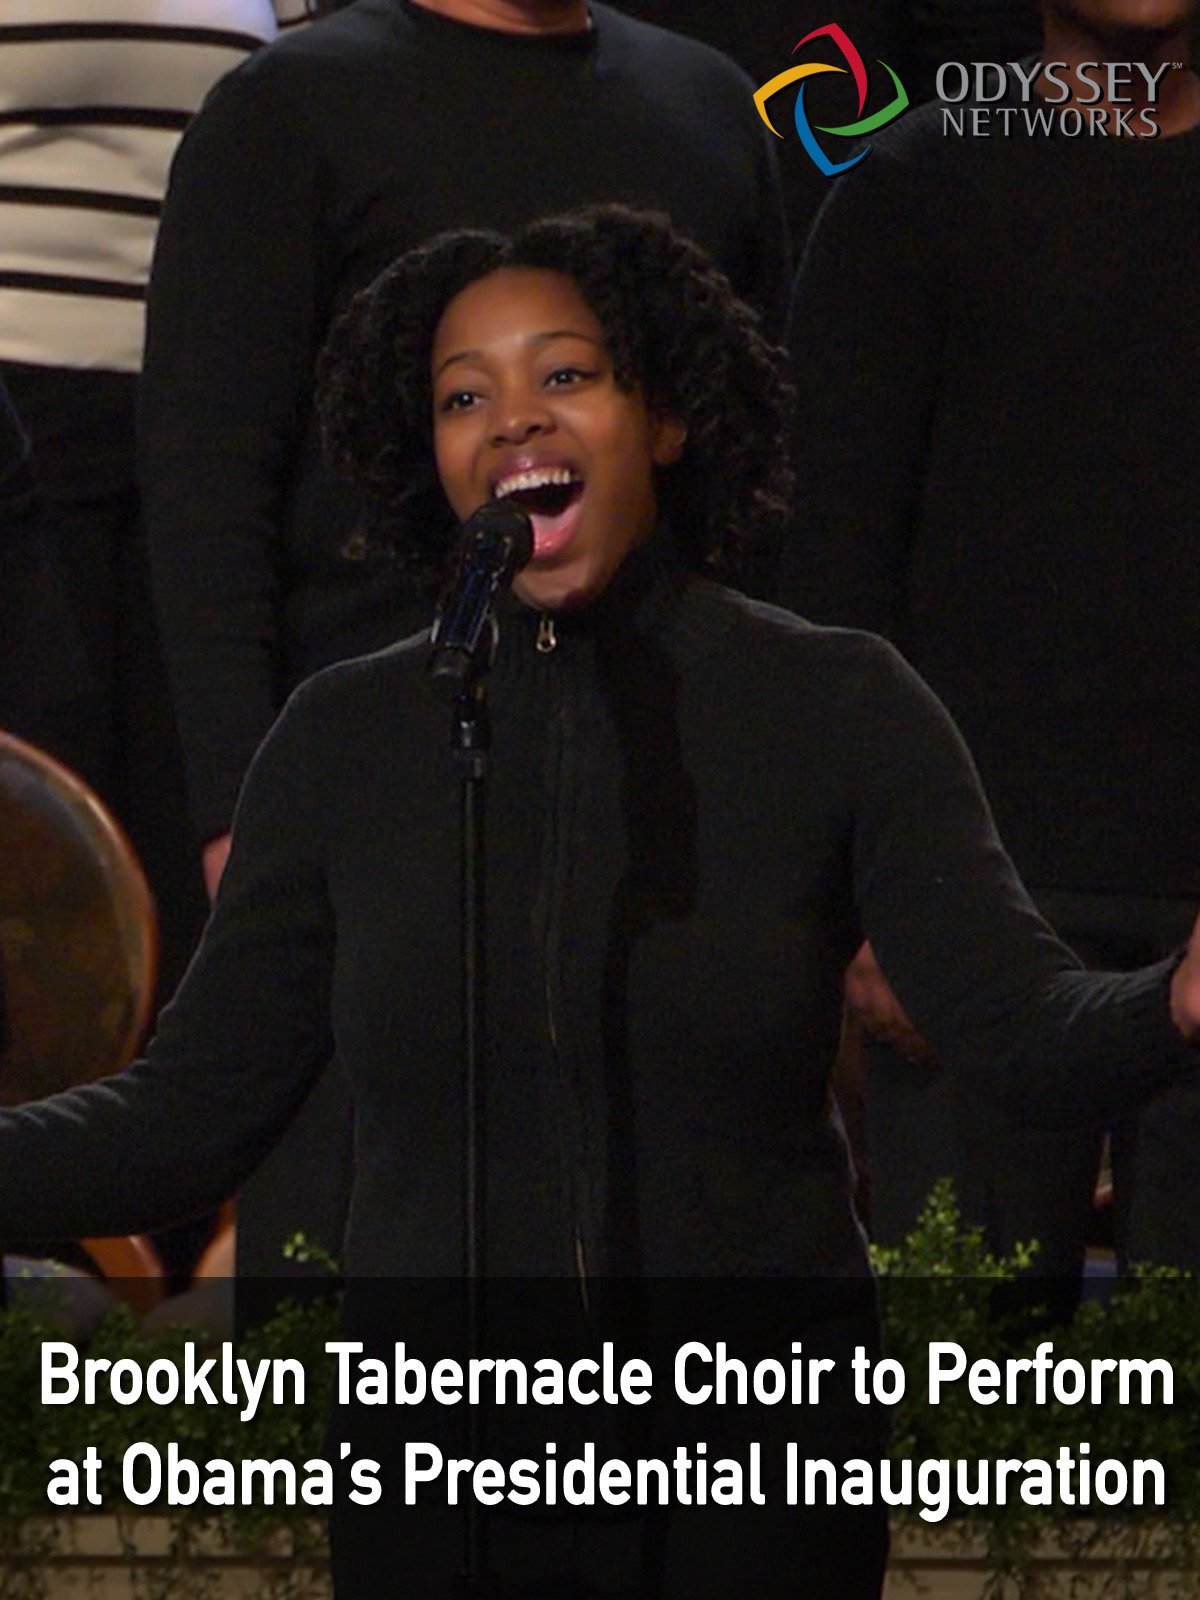 Clip: Brooklyn Tabernacle Choir to Perform at Obama's Presidential Inauguration